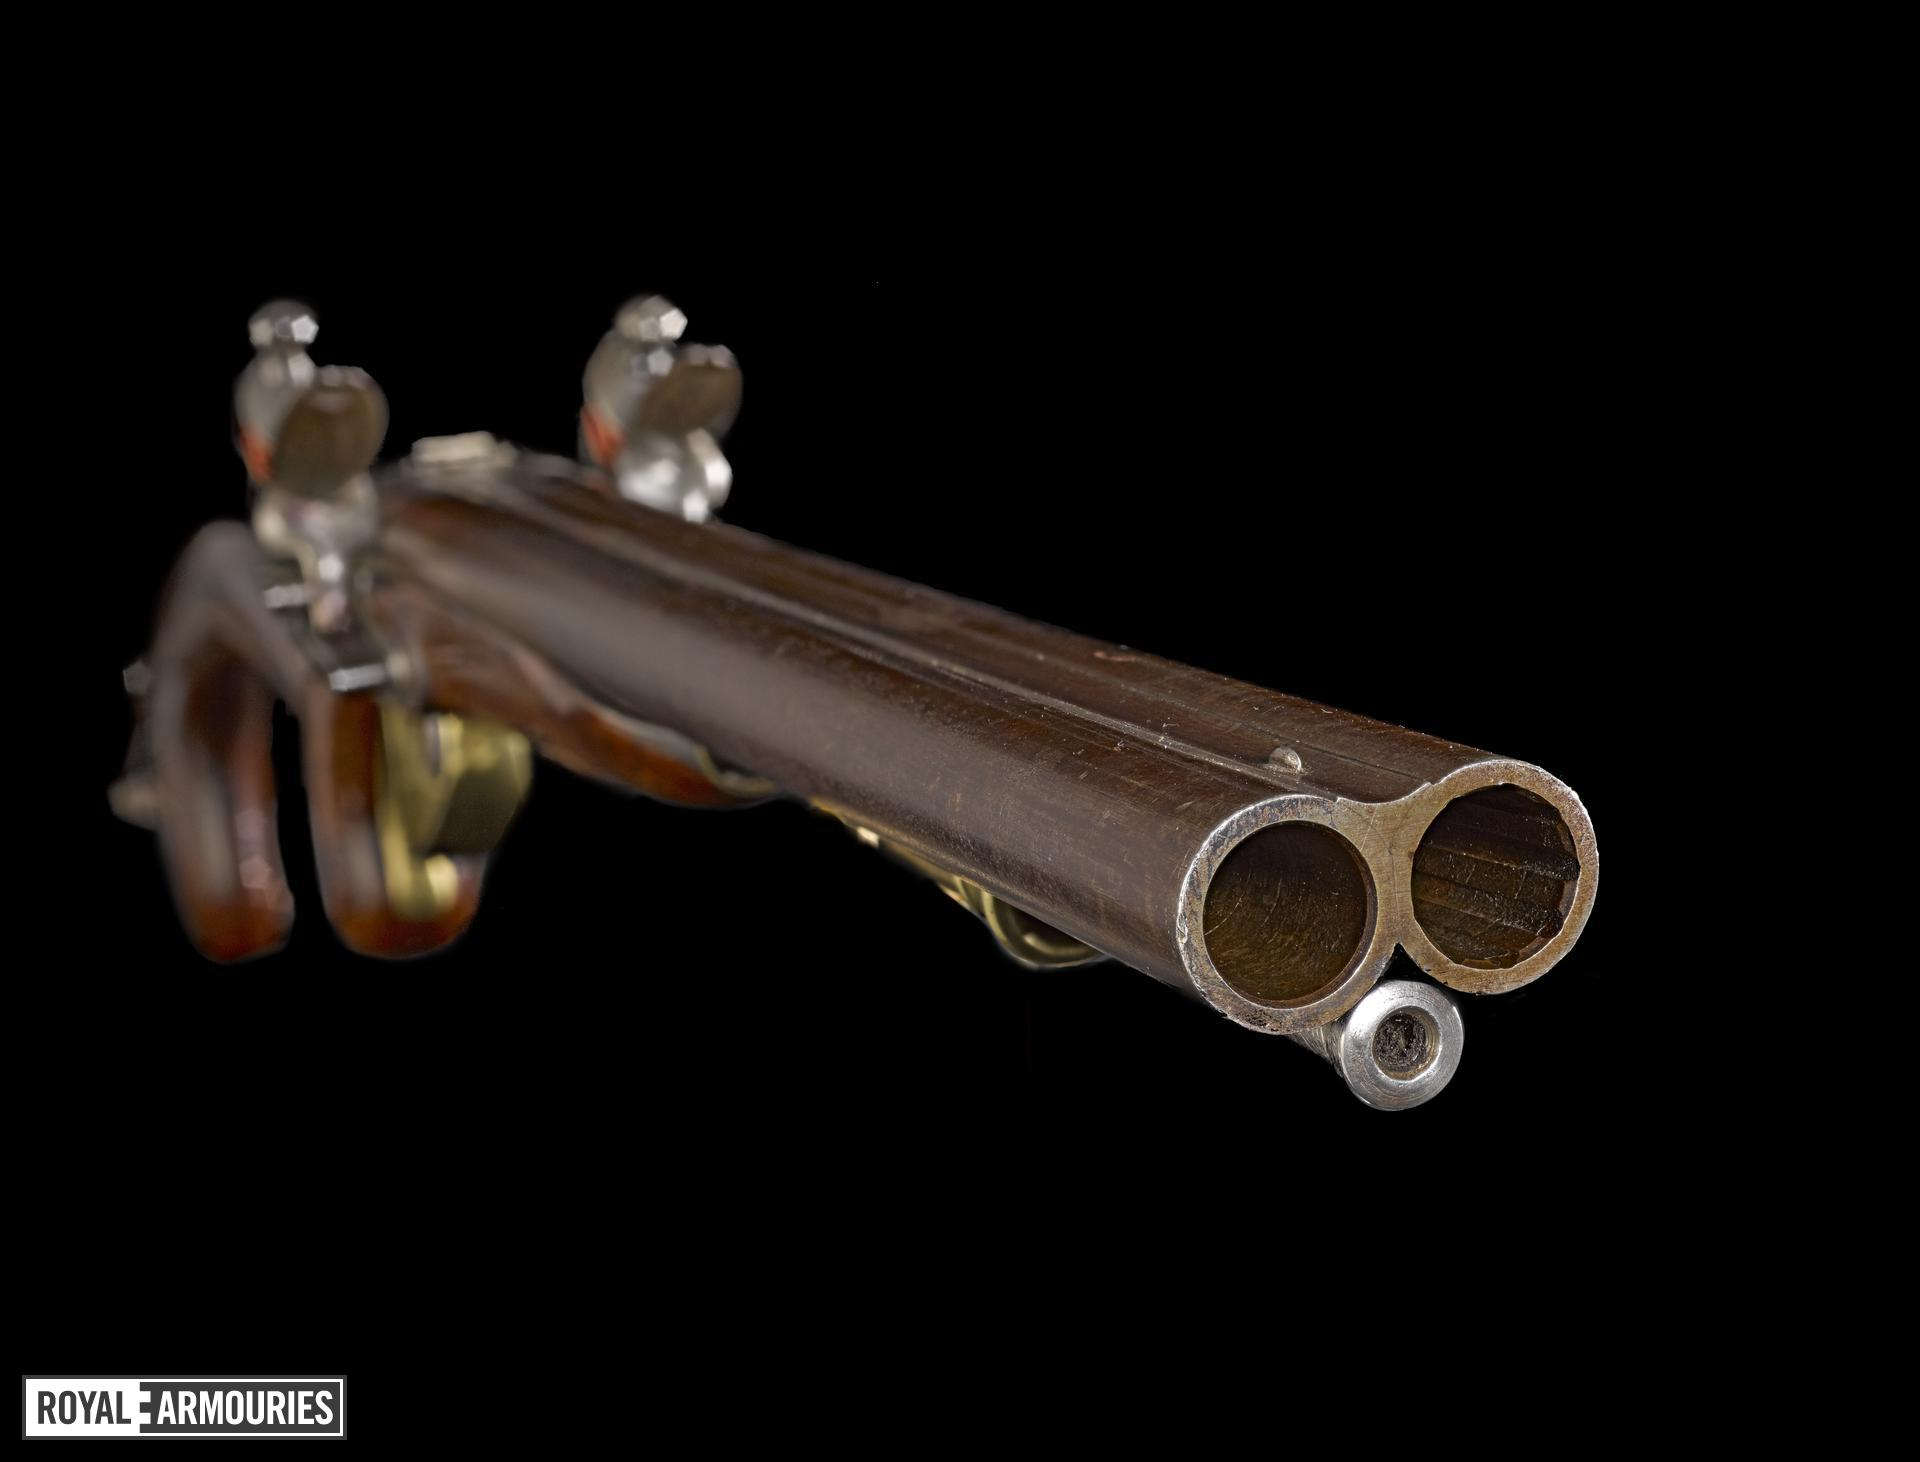 Flintlock muzzle-loading military pistol-carbine, Royal Horse Artillery Model, about 1793, Britain  (XII.843)